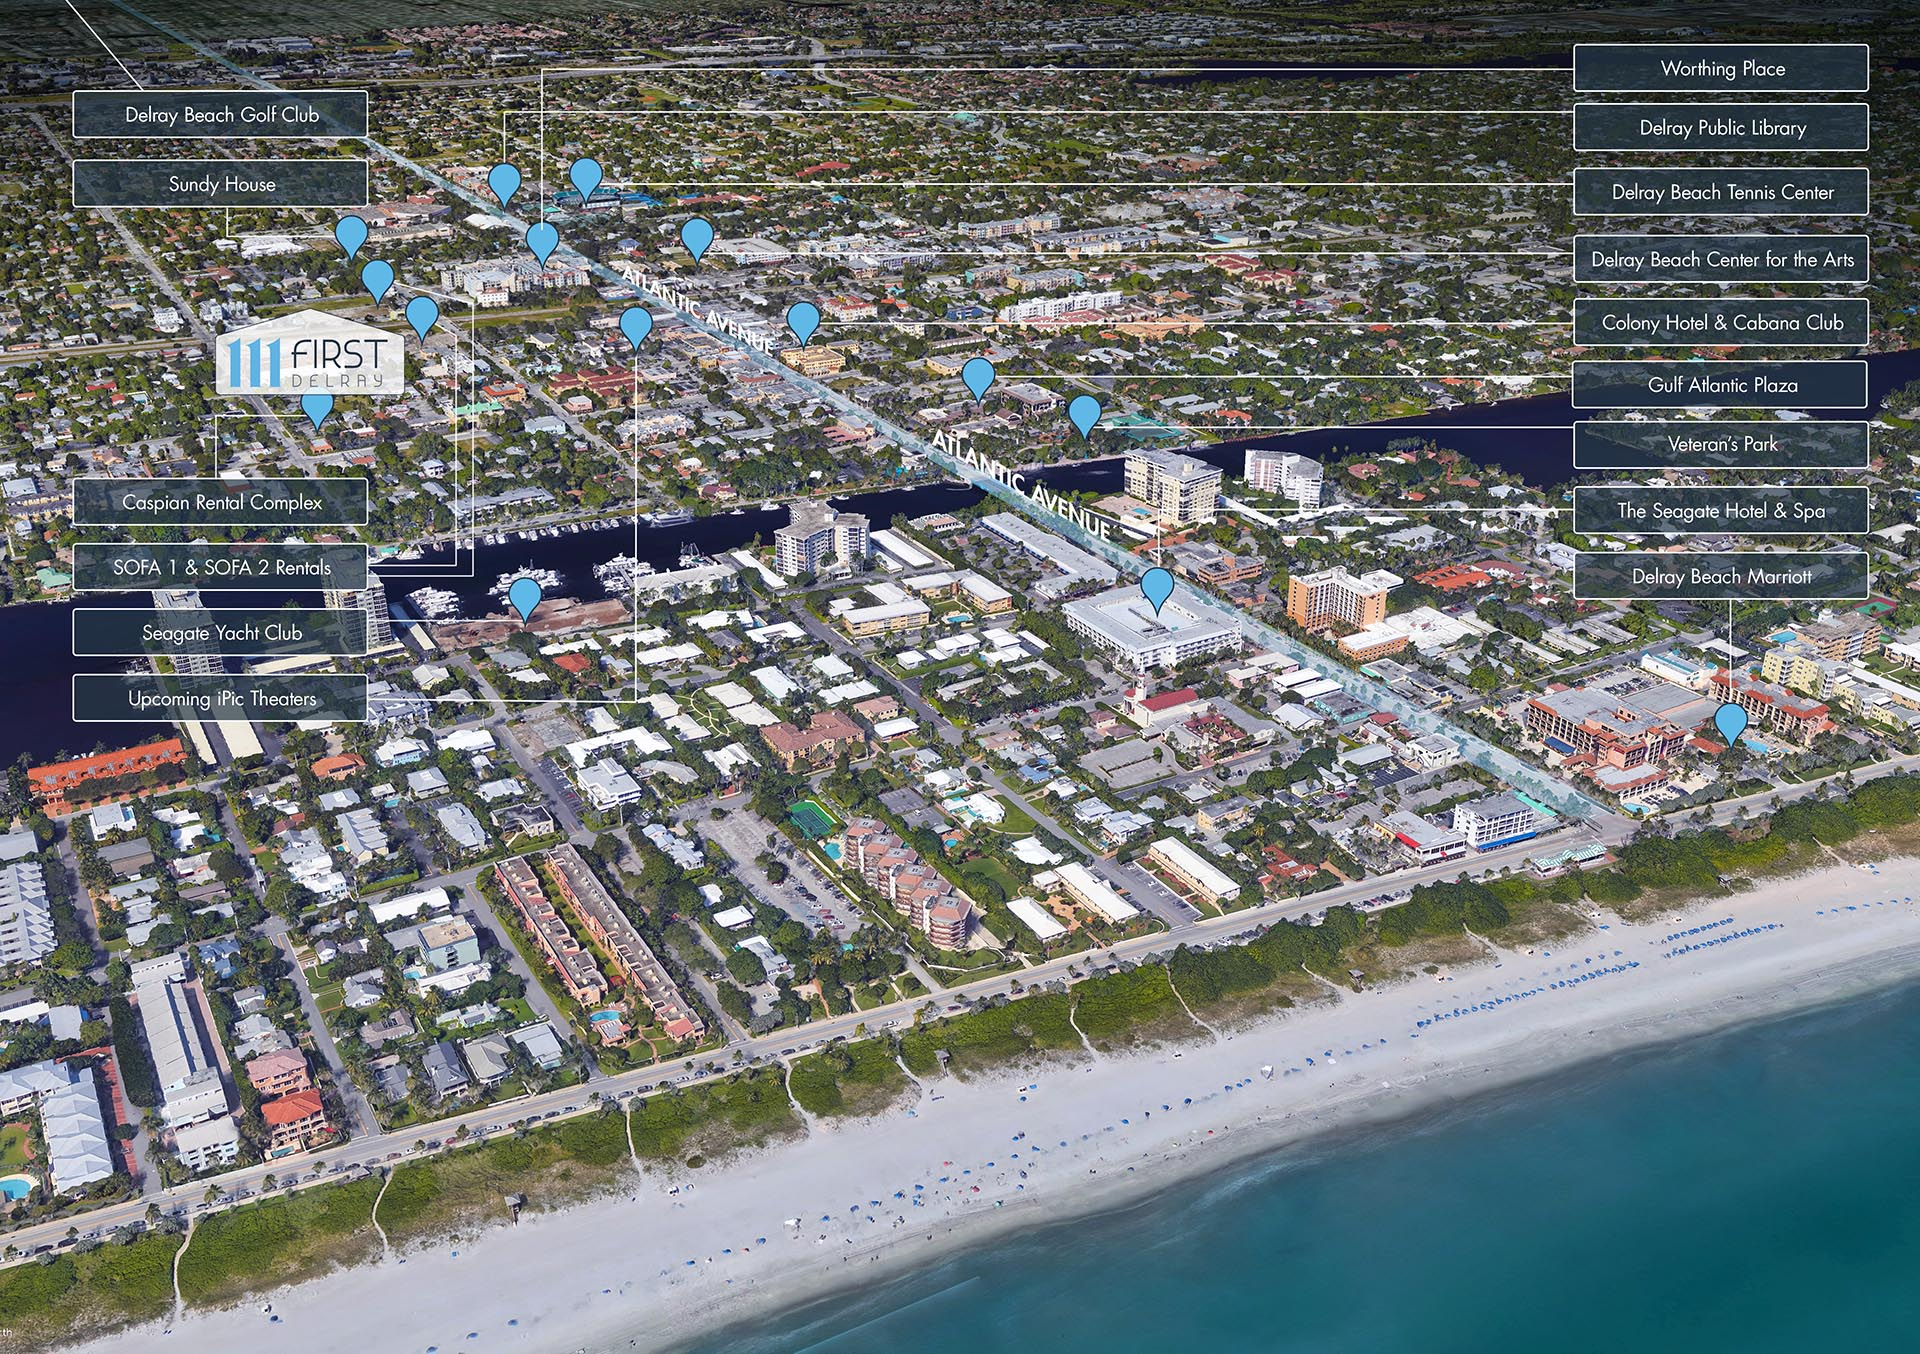 111 First Delray Aerial Location Map